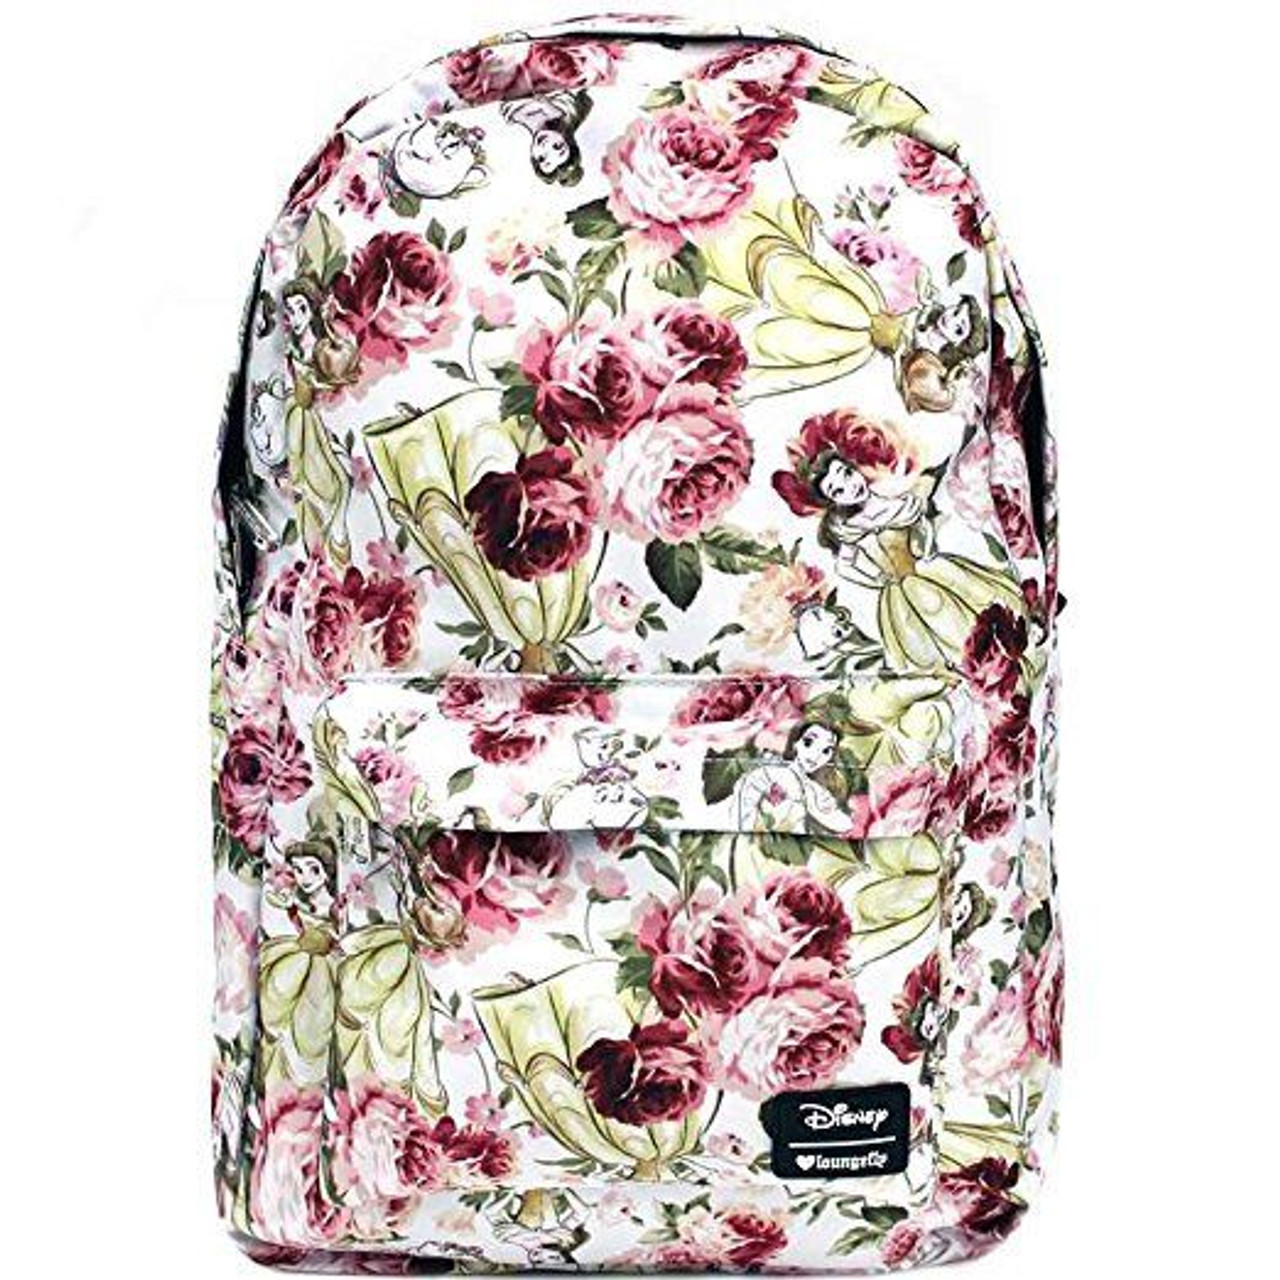 Loungefly Disney Beauty and the Beast Belle Floral Womens Backpack WDBK0348  - Fearless Apparel